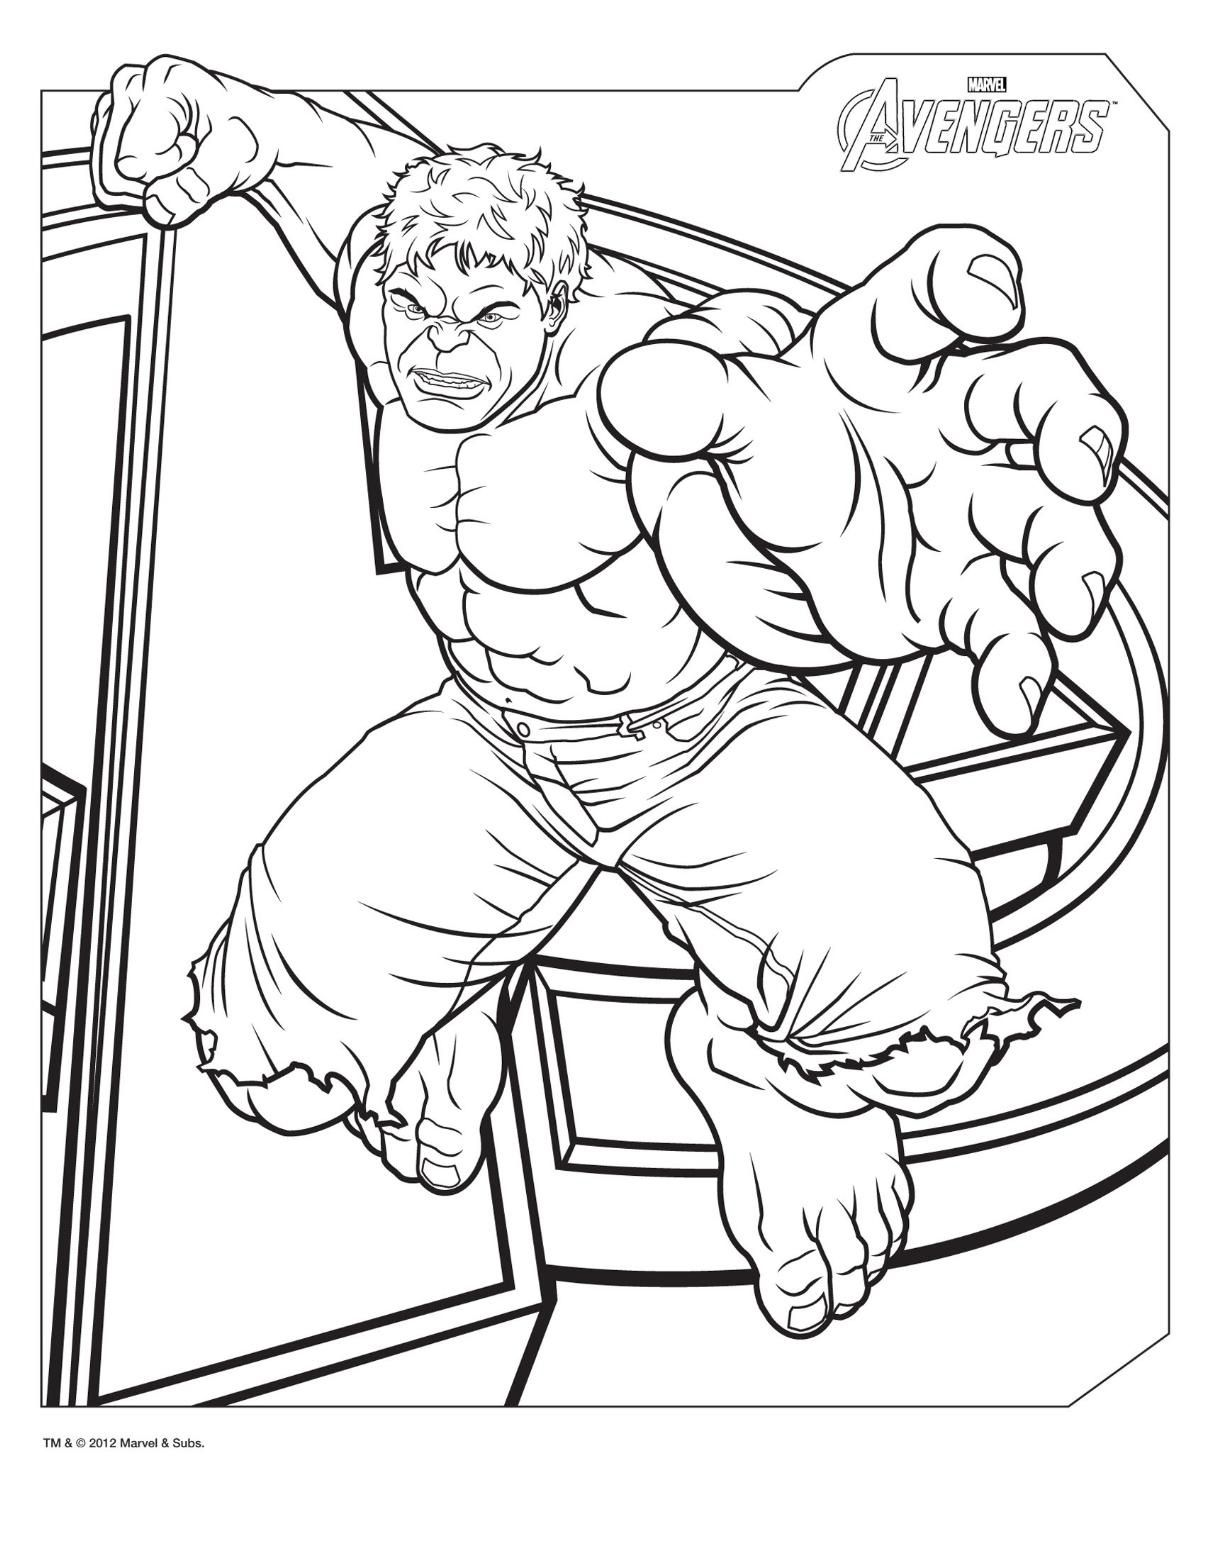 Marvel Avengers Age Of Ultron Coloring Pages Avengers Movie ...